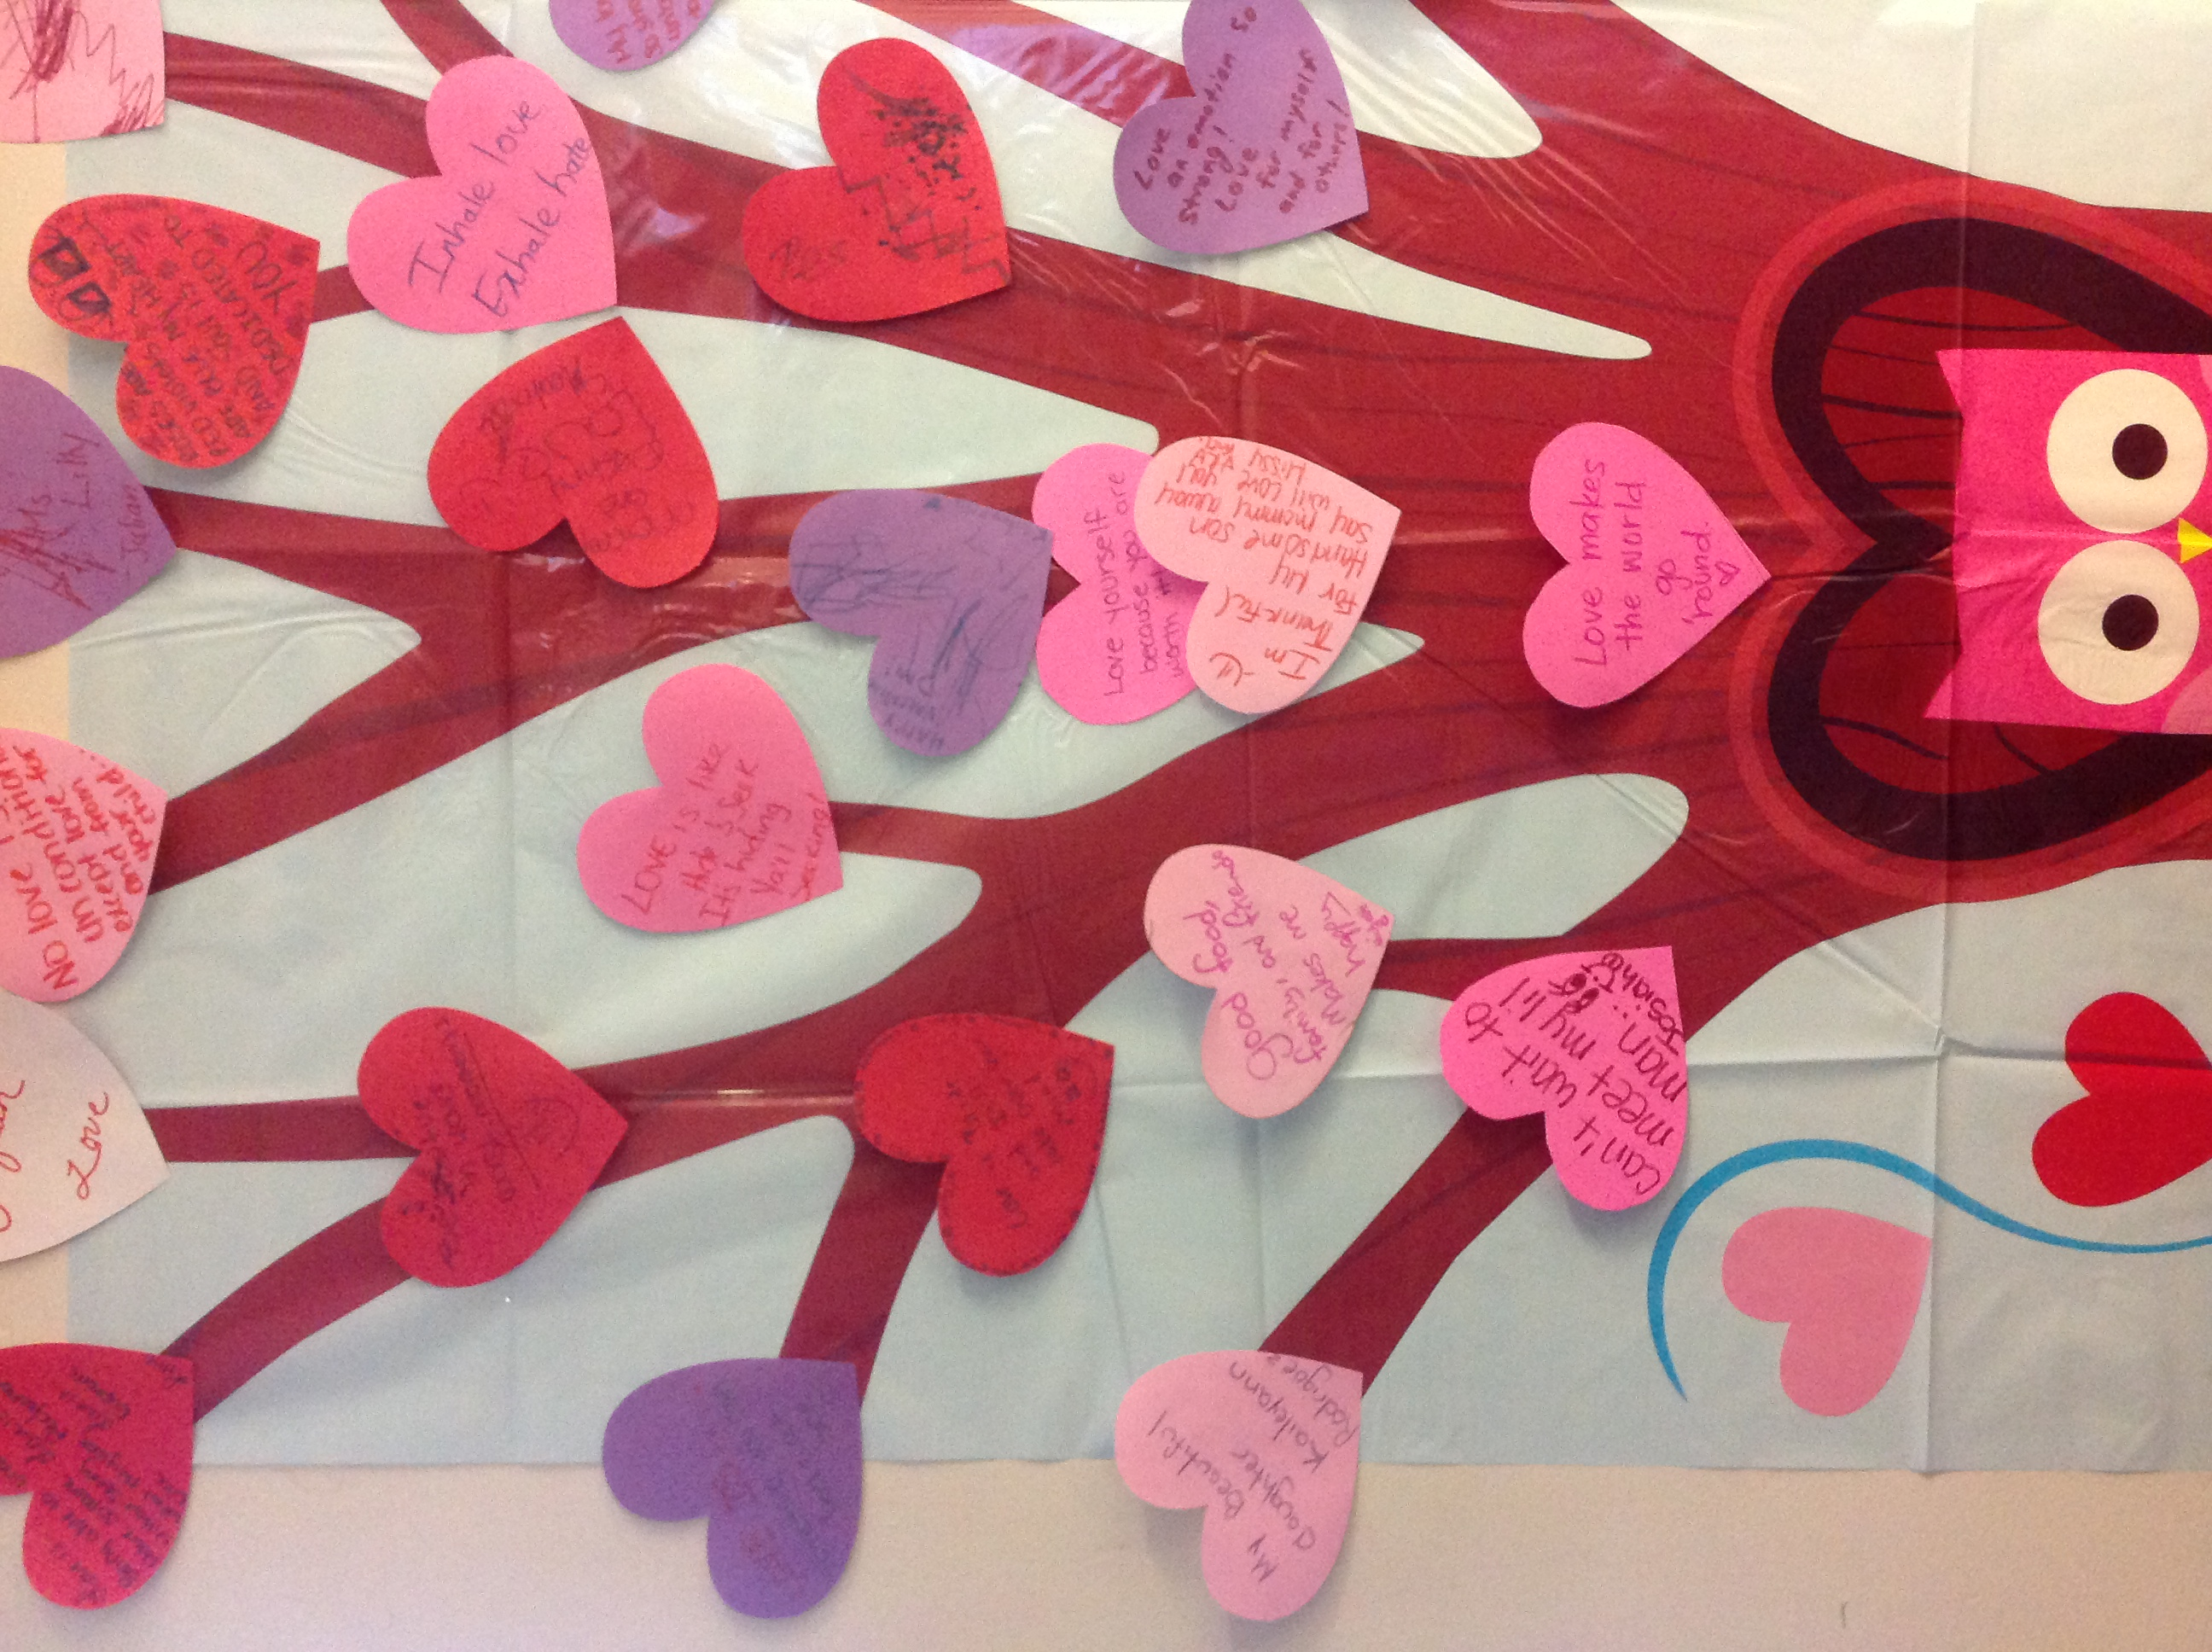 When we visited around Valentine's Day, this heart tree was hanging up in the Cafeteria and it was made by the mothers and children.